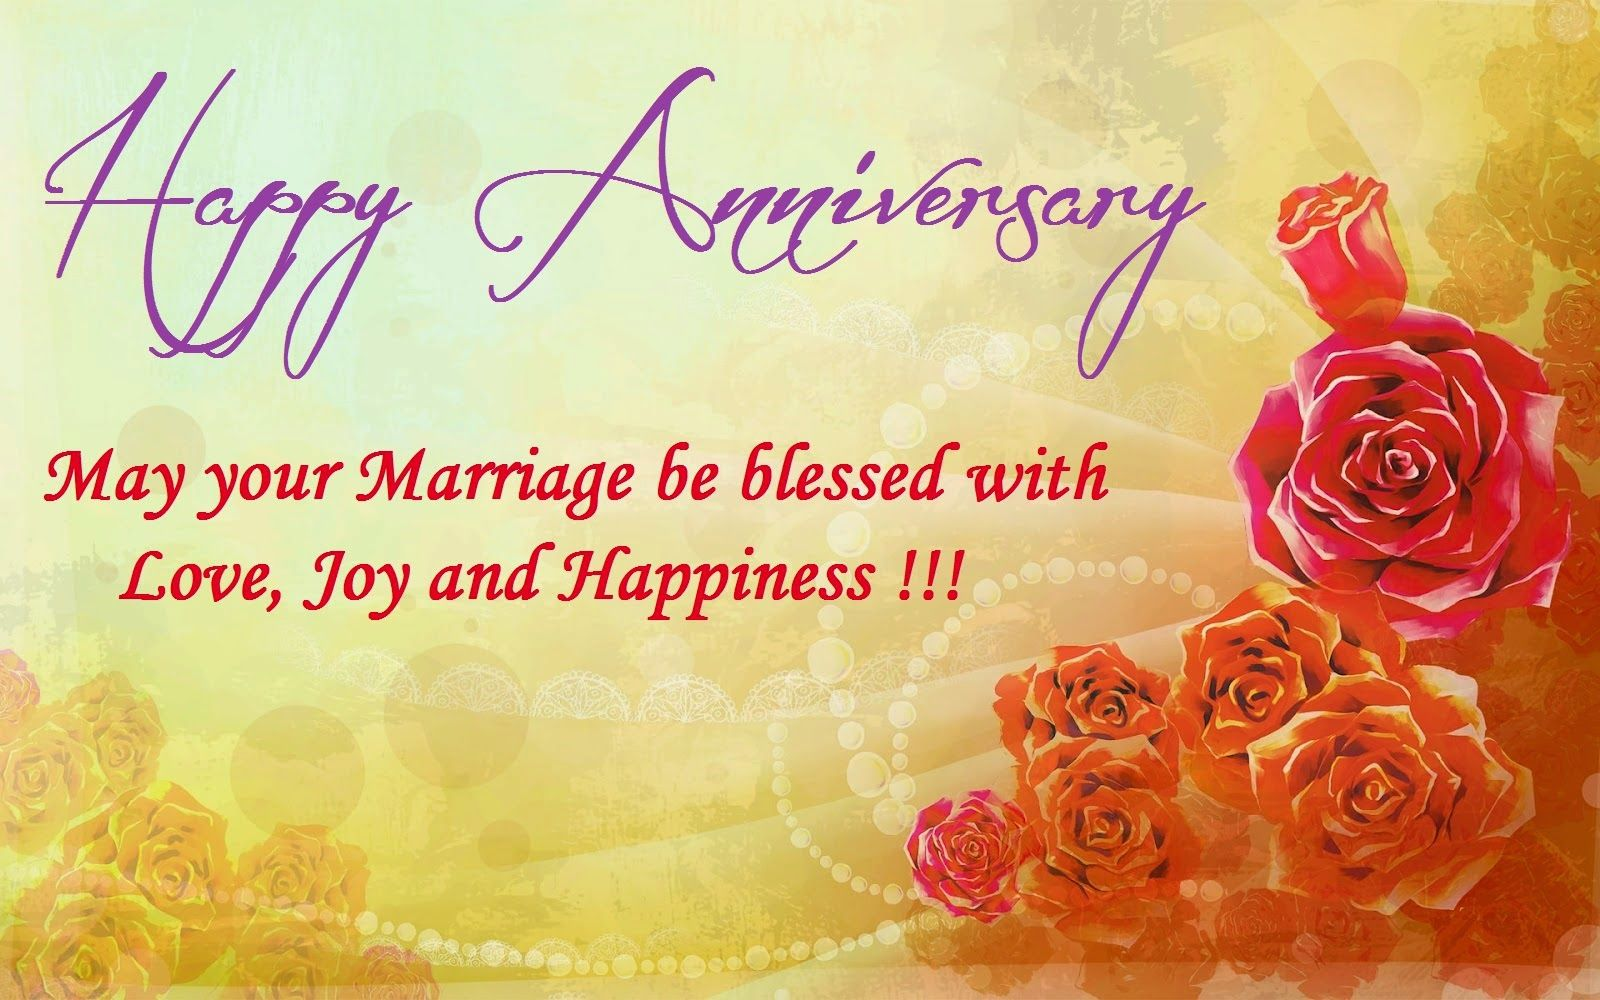 Wedding Anniversary Greetings For Wife Husband Or Couple Happy